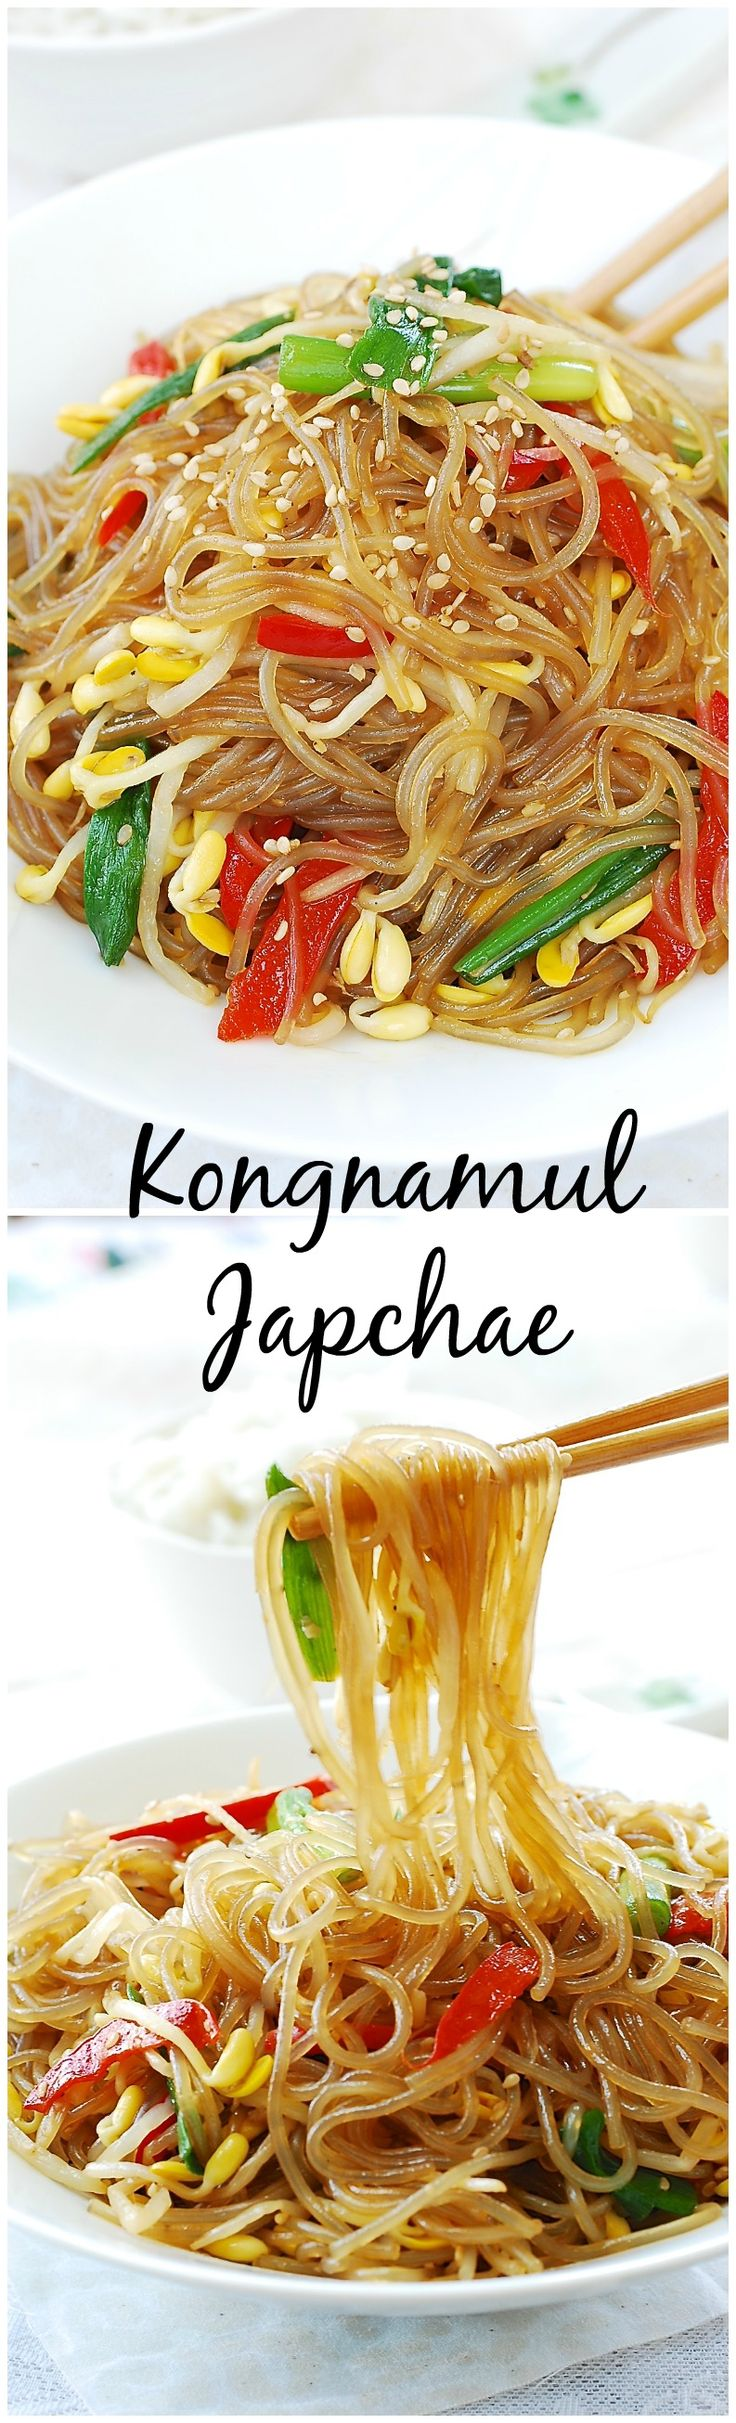 Korean noodle recipes easy